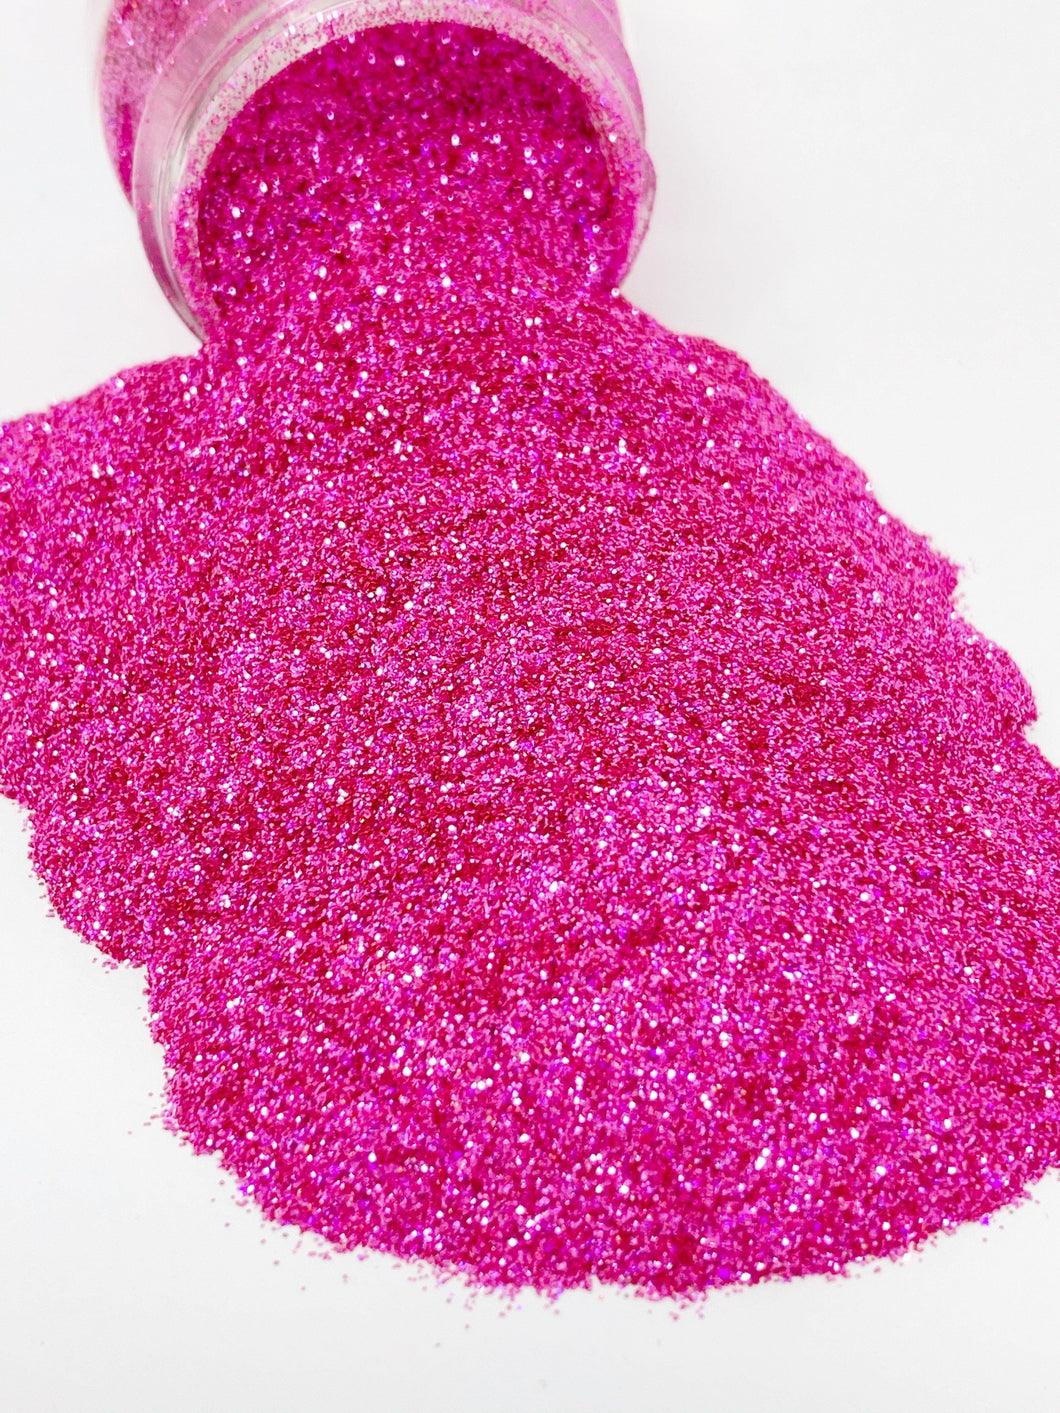 Hawt Flash - Ultra Fine Super Holographic Glitter - Perfect for Tack-It Method